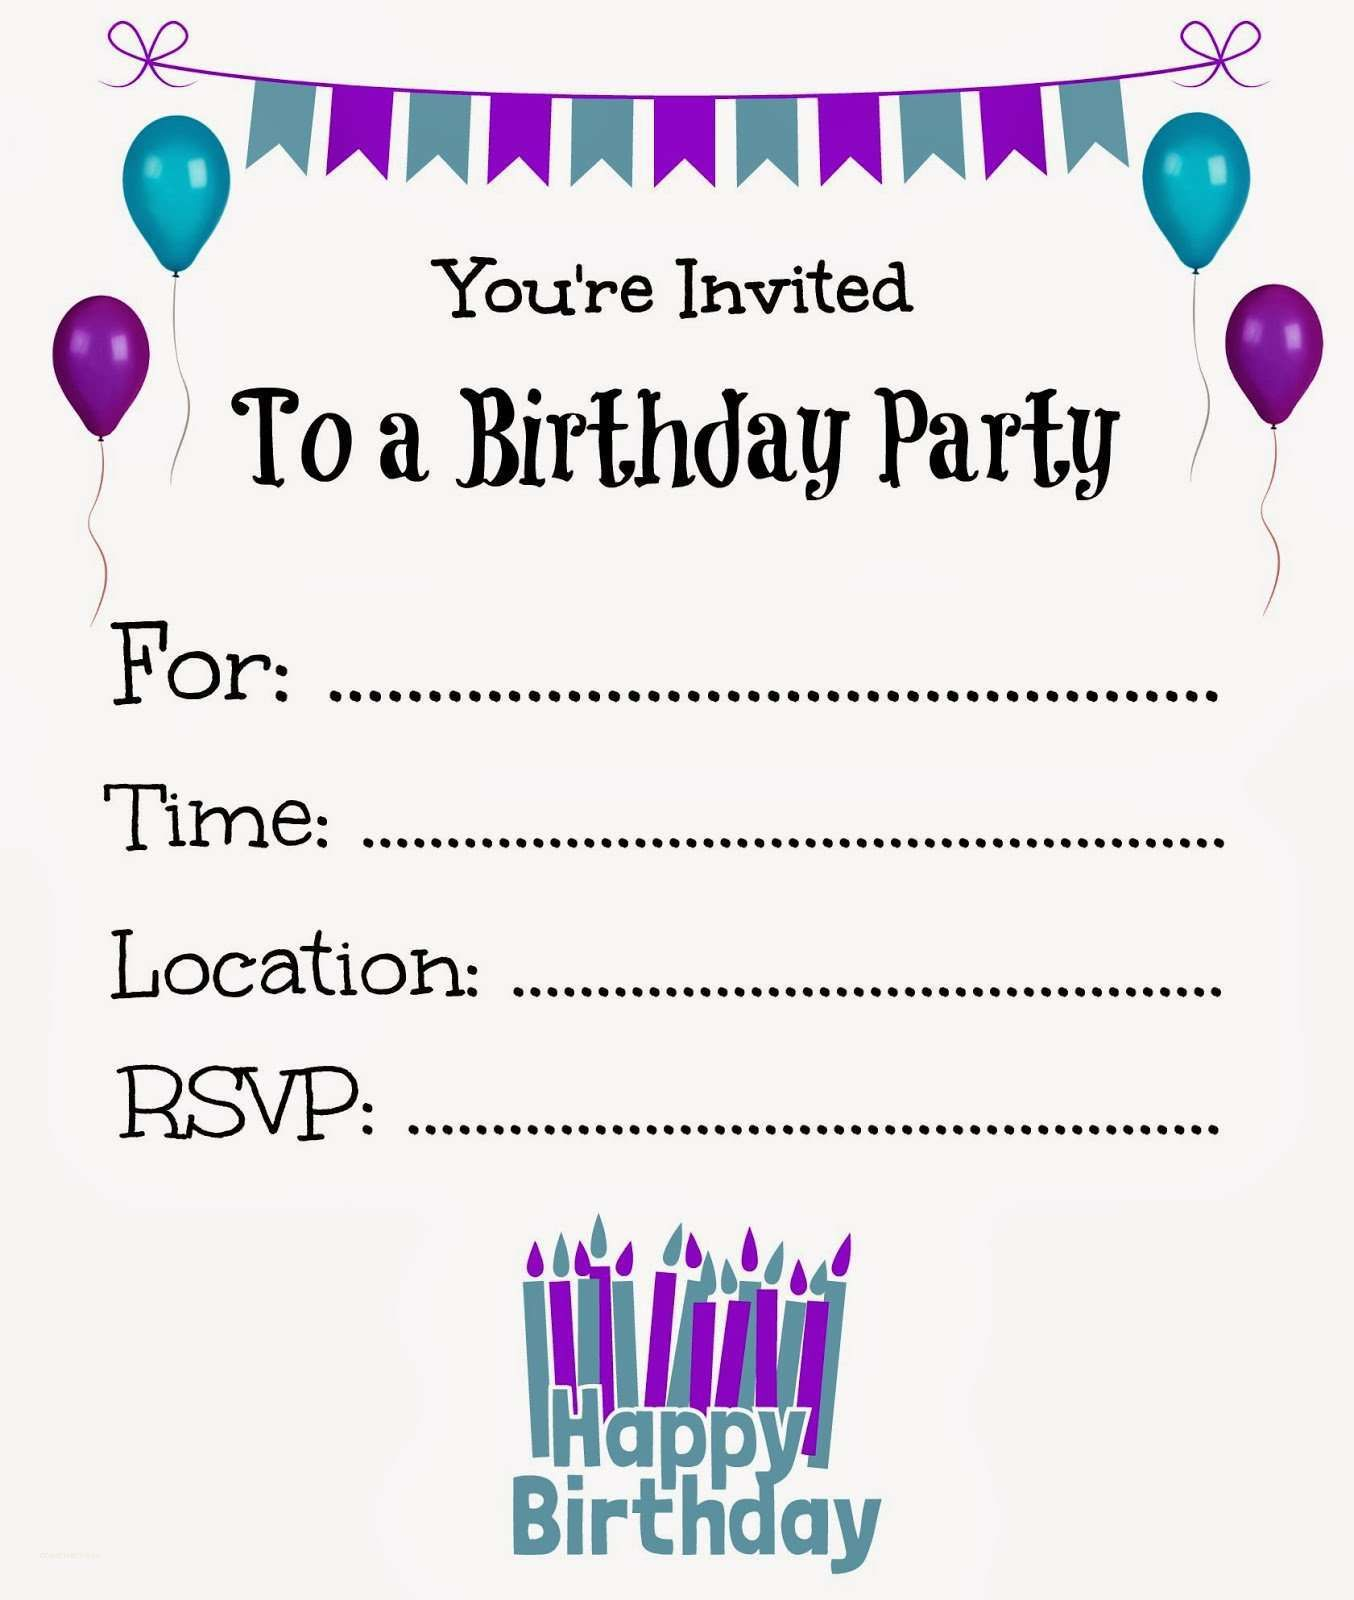 New Free Online Printable Birthday Party Invitations Birthday - Party invitation template: birthday party invitation template free online